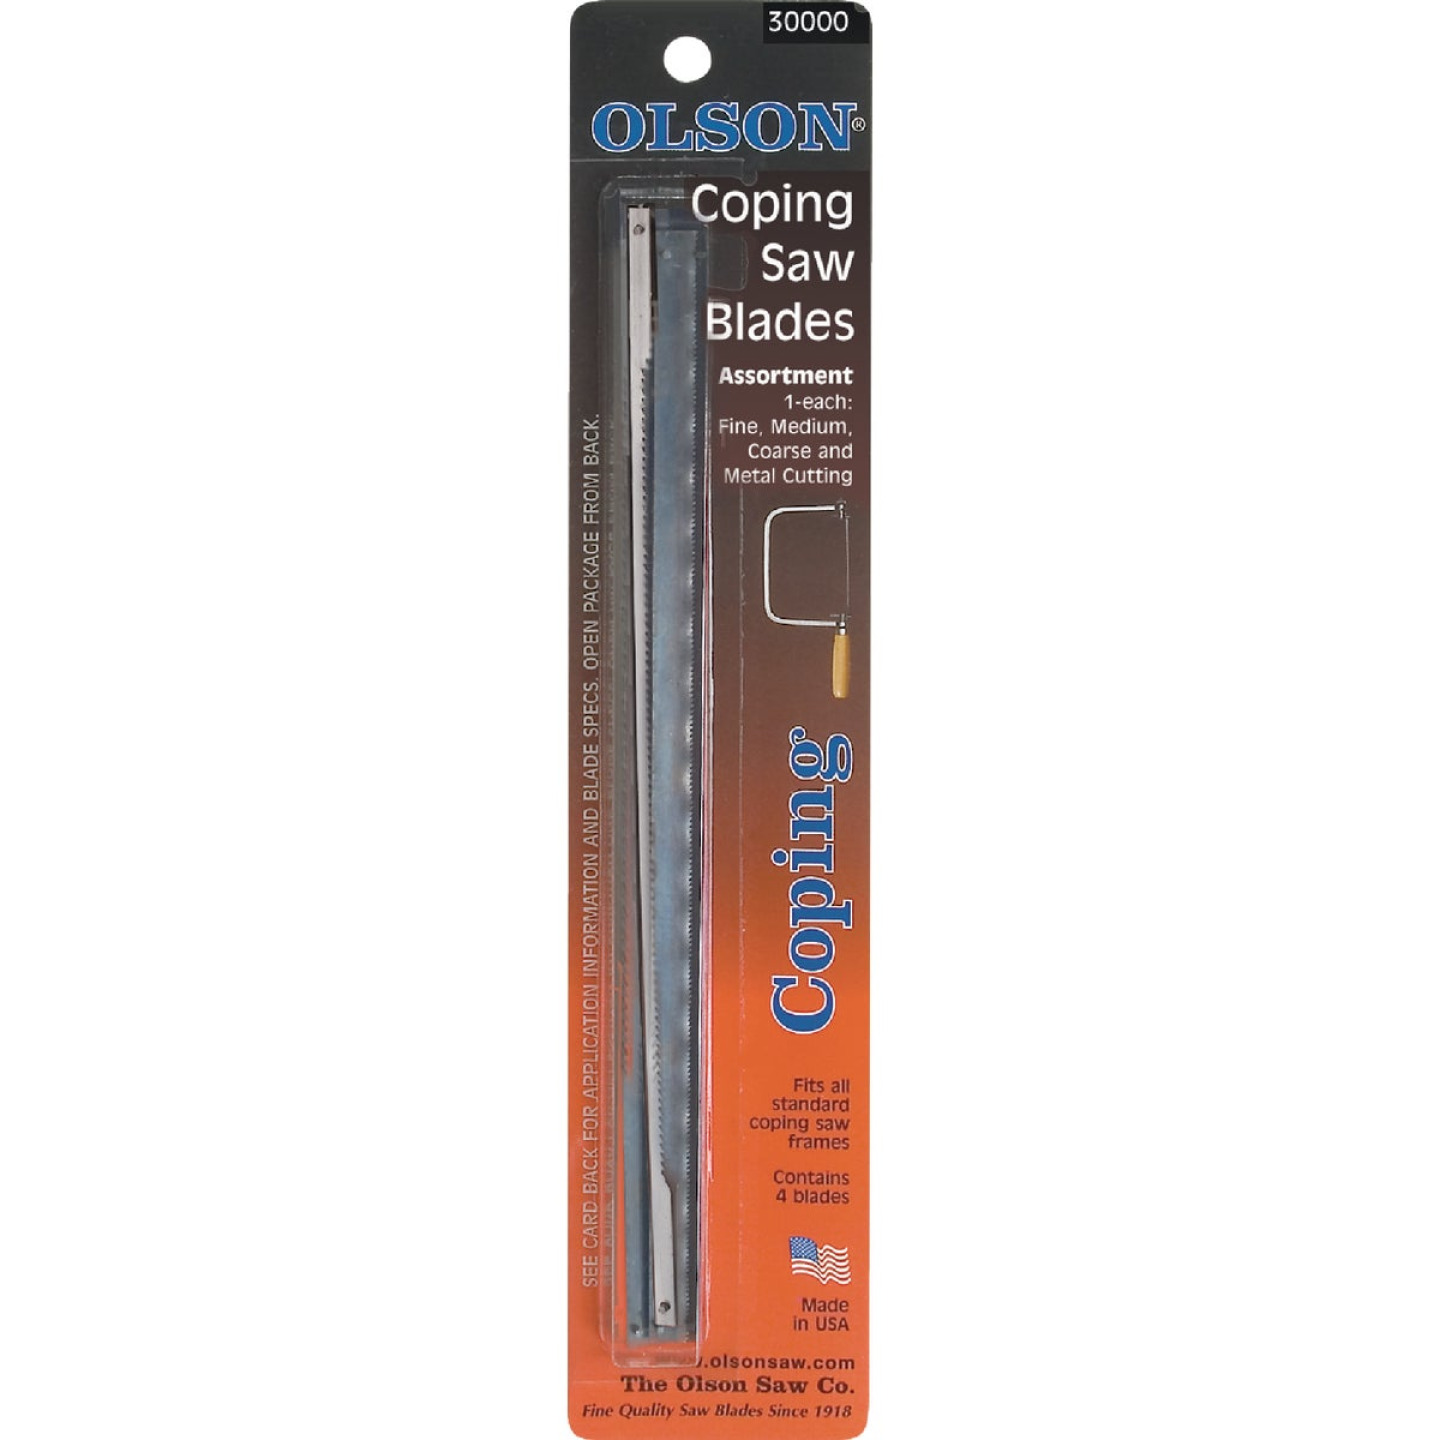 Olson 6-1/2 In. Coping Saw Blade Assortment (4-Pack) Image 1